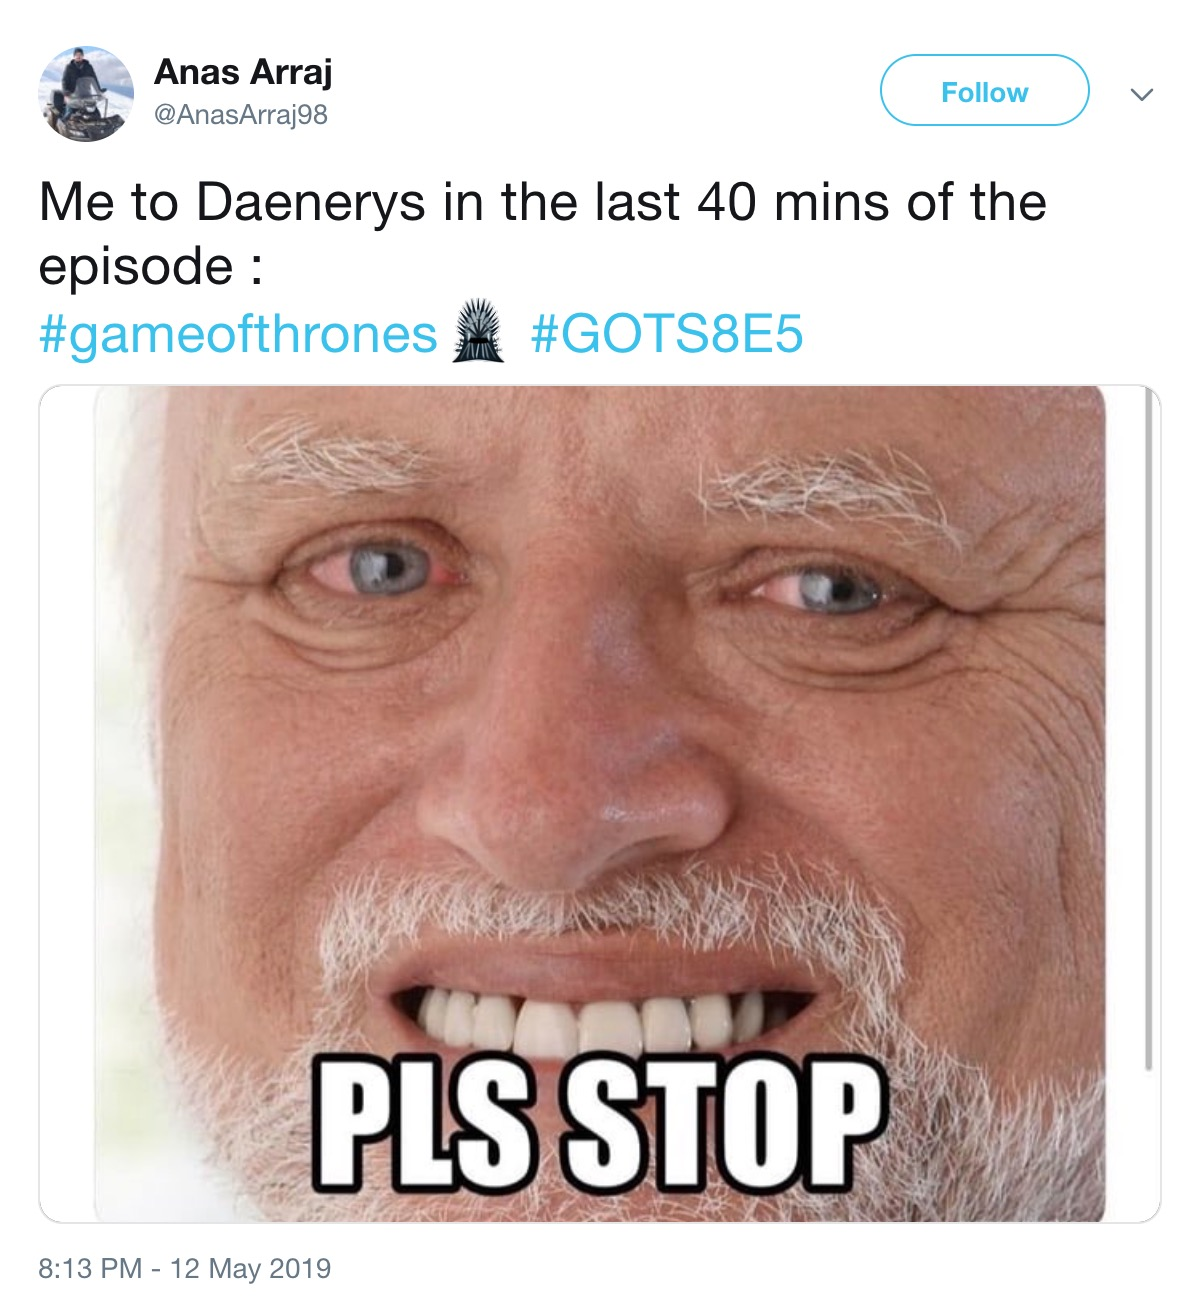 68 'Game of Thrones' Season 8 Episode 5 Memes and Reactions